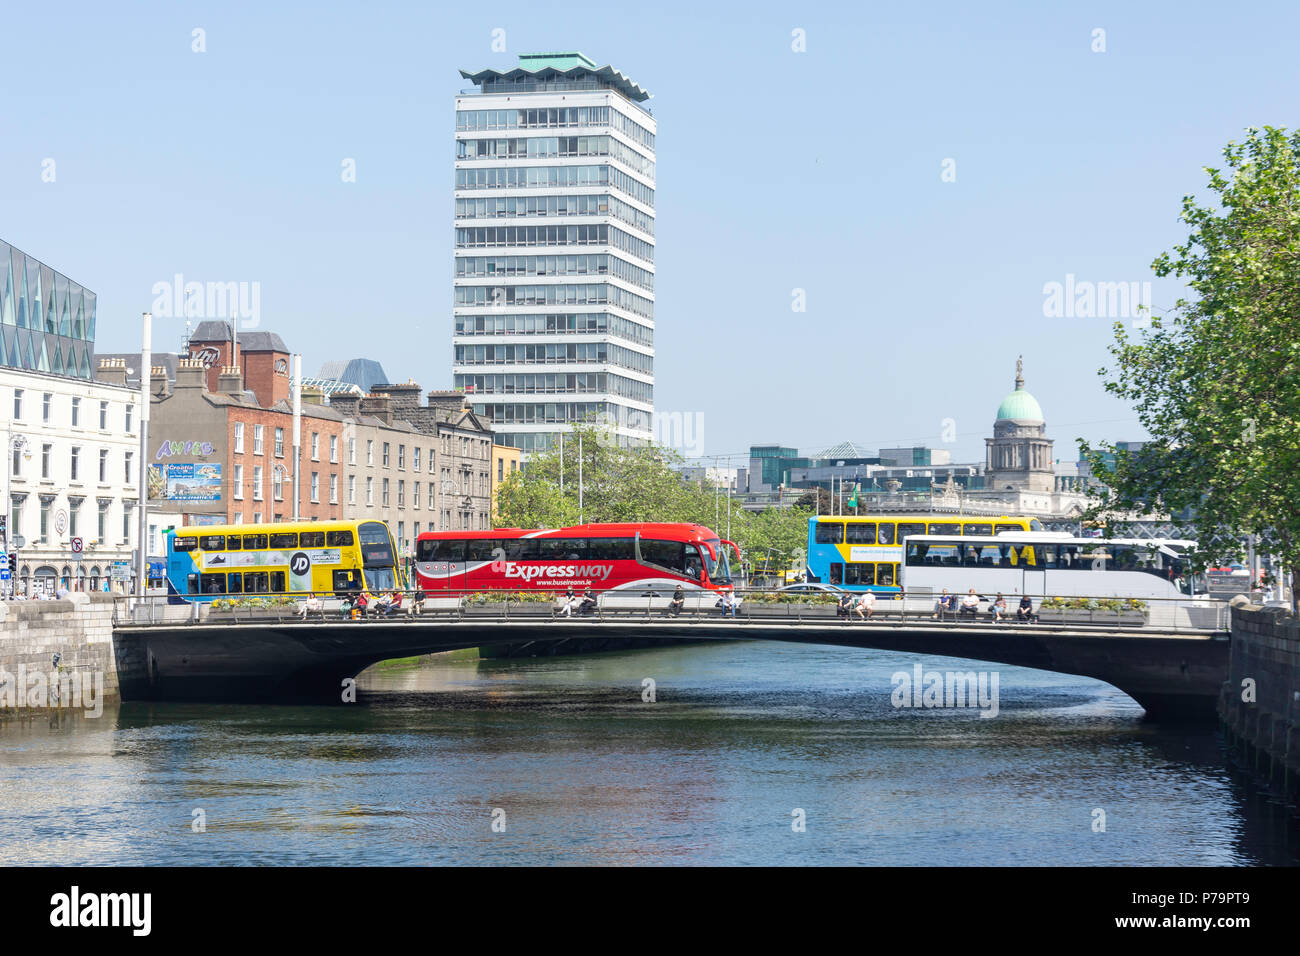 Rosie Hackett Bridge over River Liffey, Dublin, Leinster Province, Republic of Ireland - Stock Image